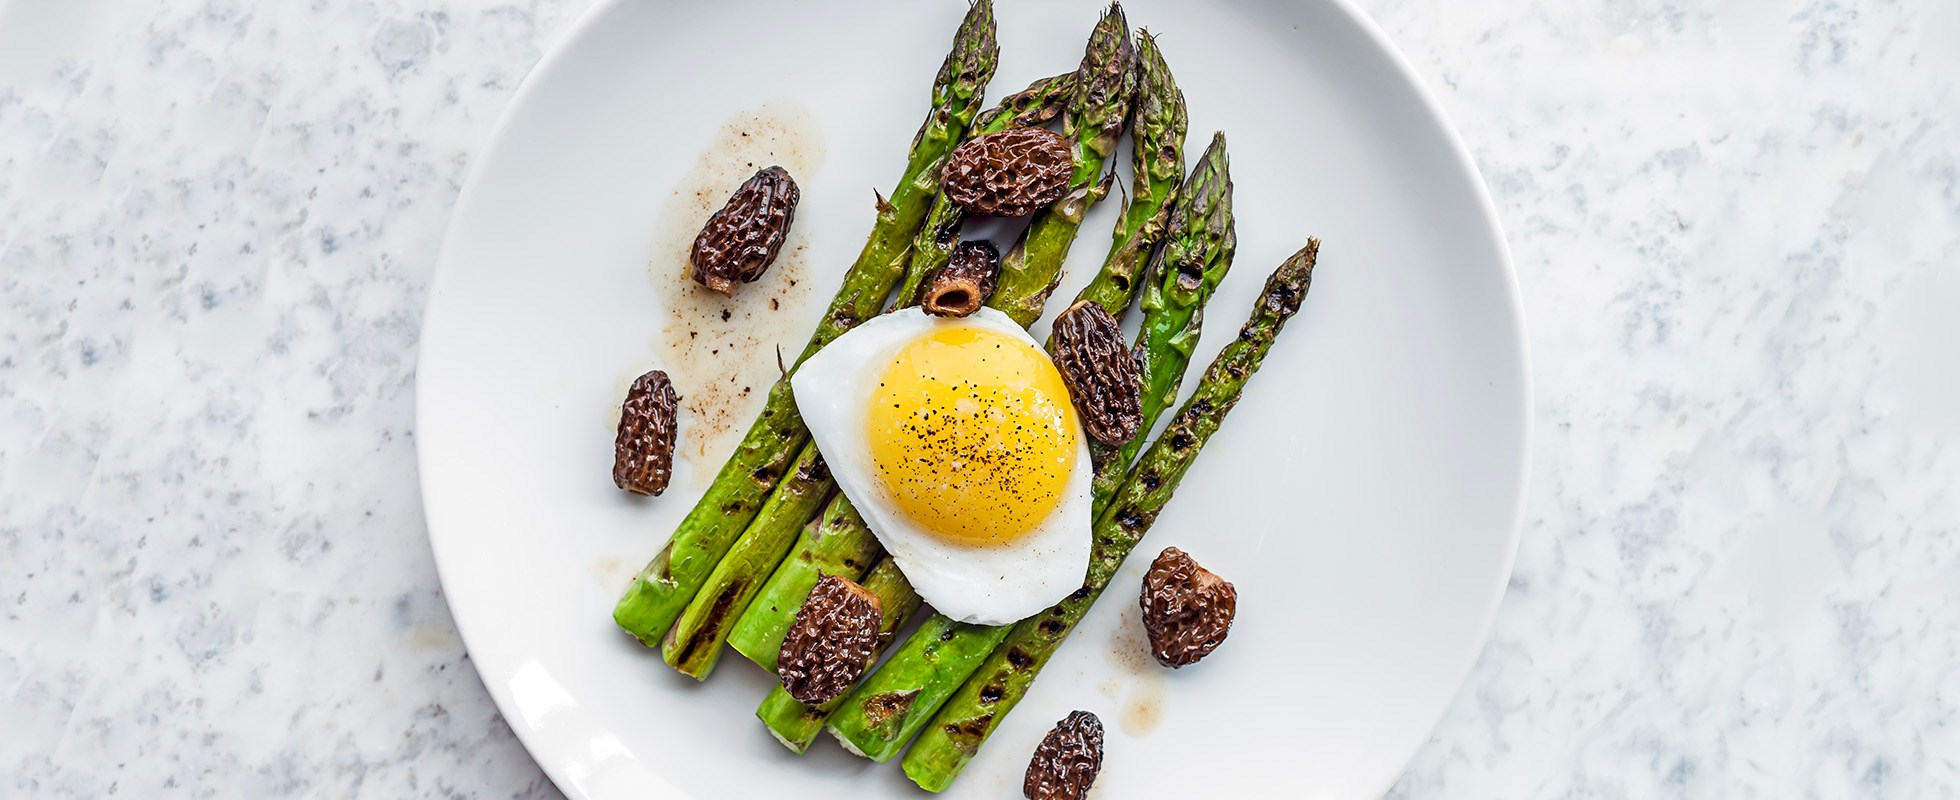 38 easy starter recipes for dinner party starters olive magazine our simple starter recipe for chargrilled asparagus fried duck egg and morels comes from noble rot in bloomsbury and makes a great quick veggie starter forumfinder Choice Image